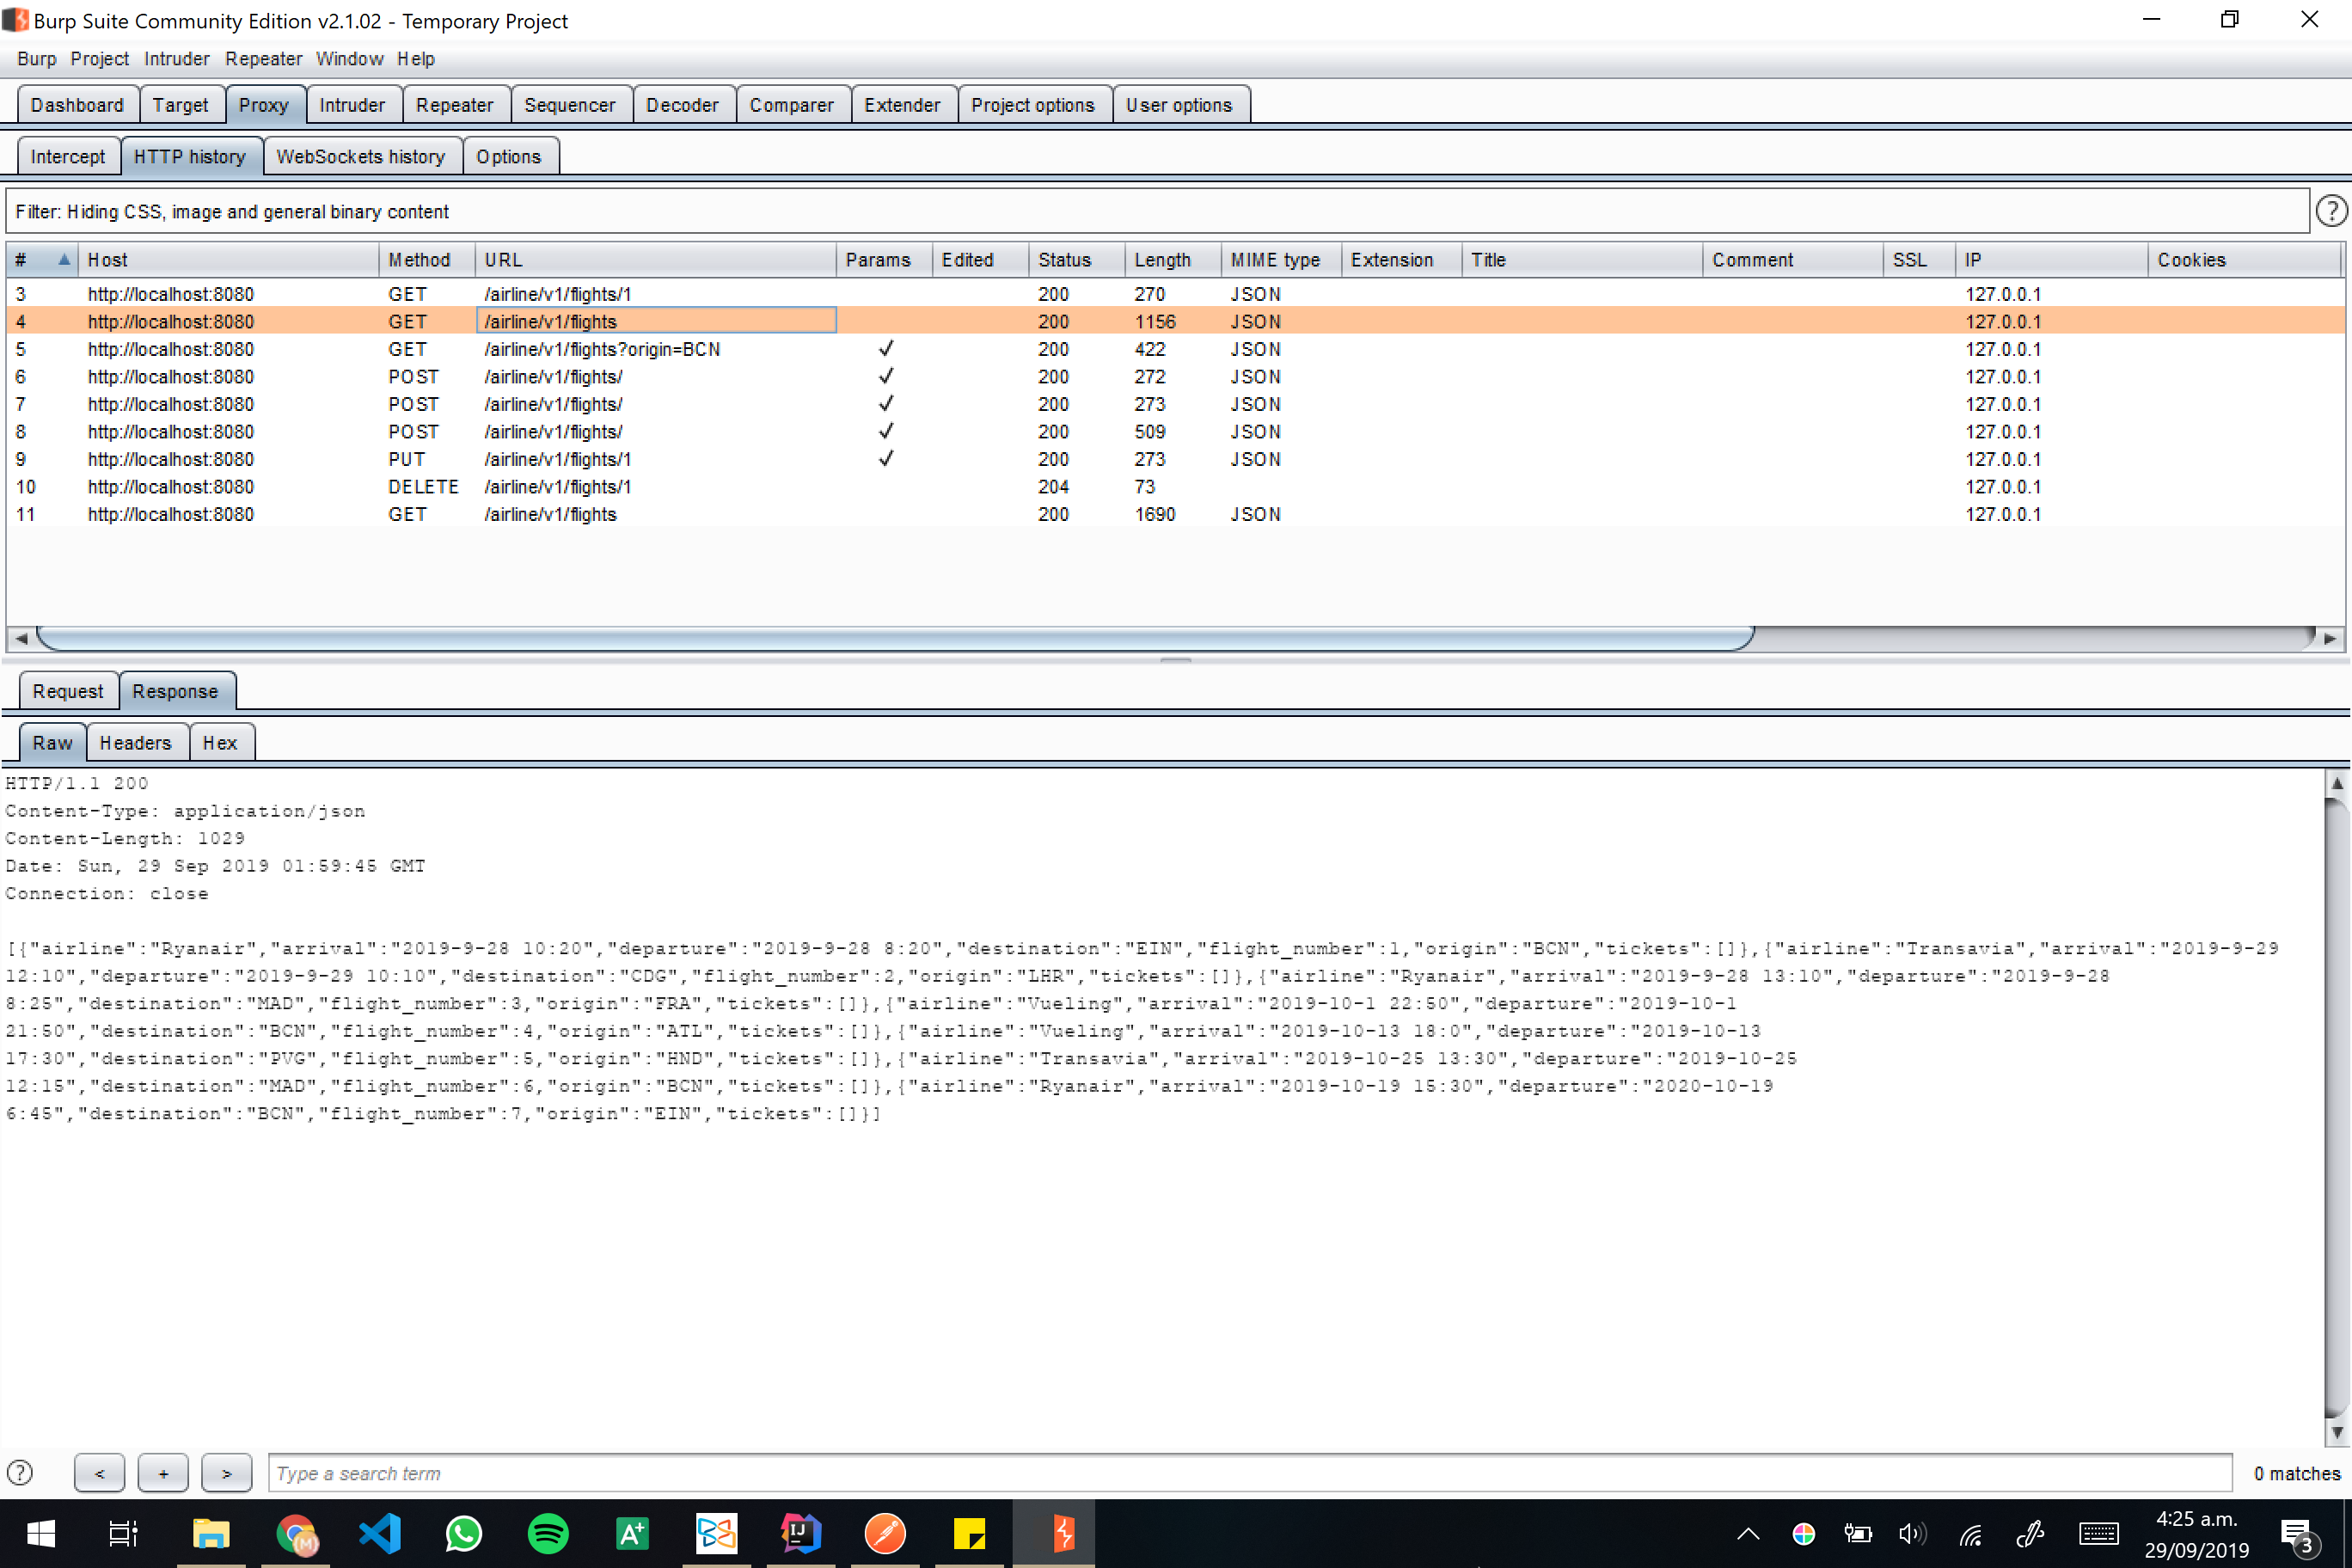 Burp screenshot 08